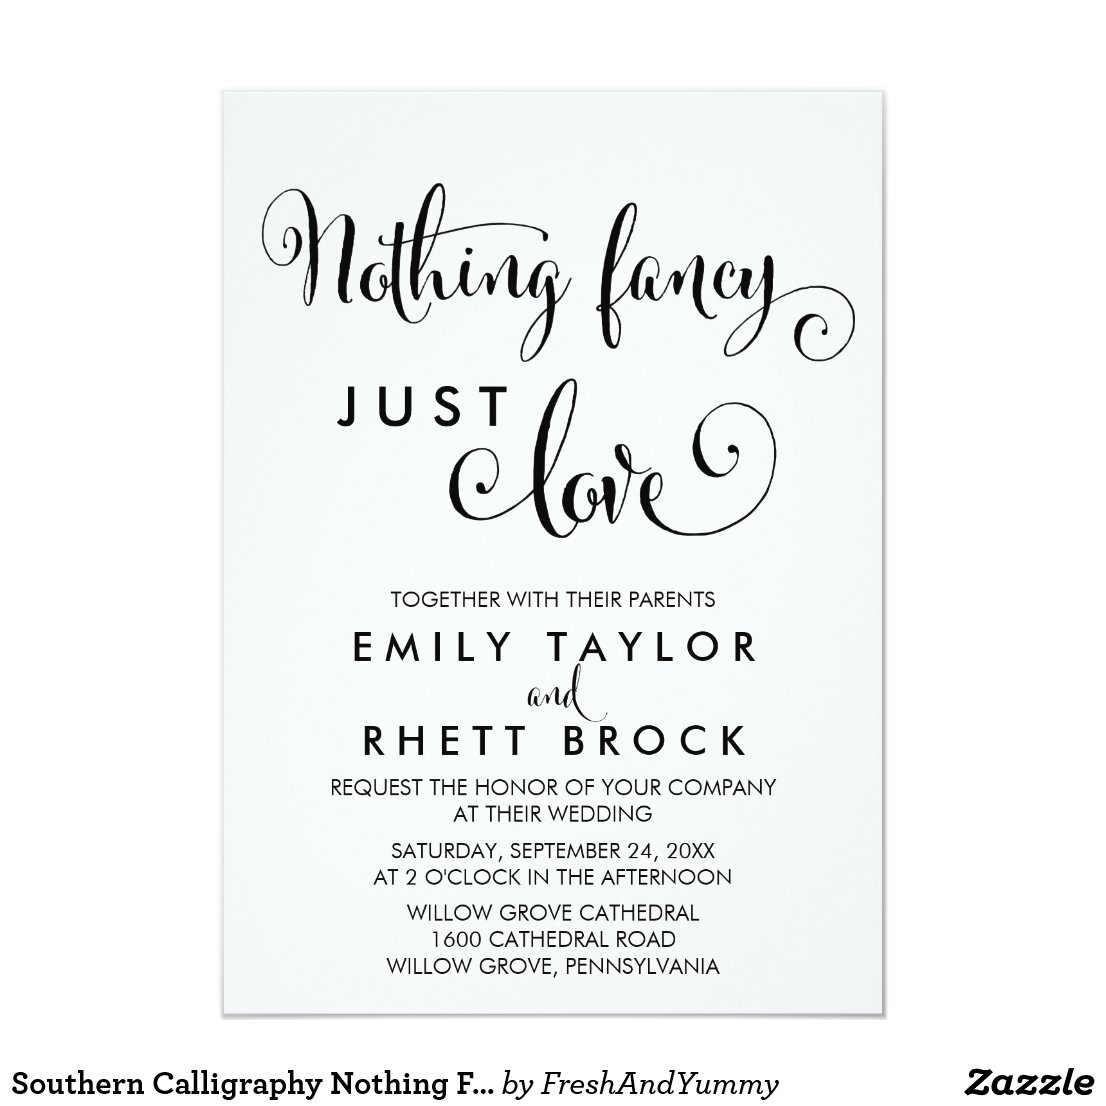 Southern Calligraphy Nothing Fancy Just Love Card